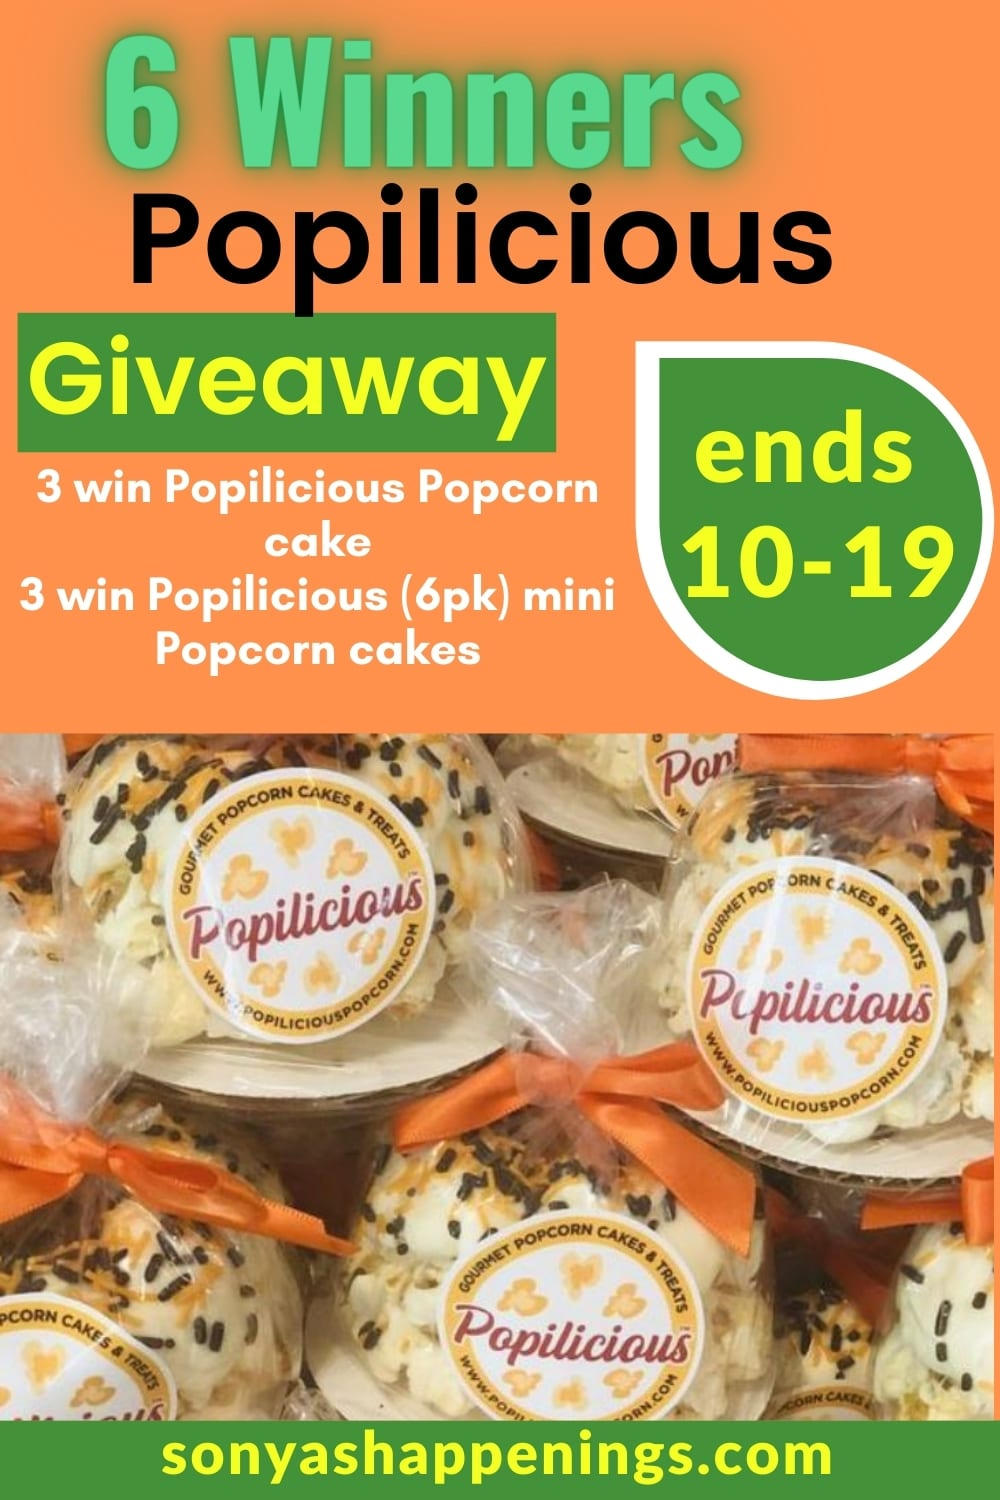 Popilicious cake giveaway (6 winners) ~ ends 10-19